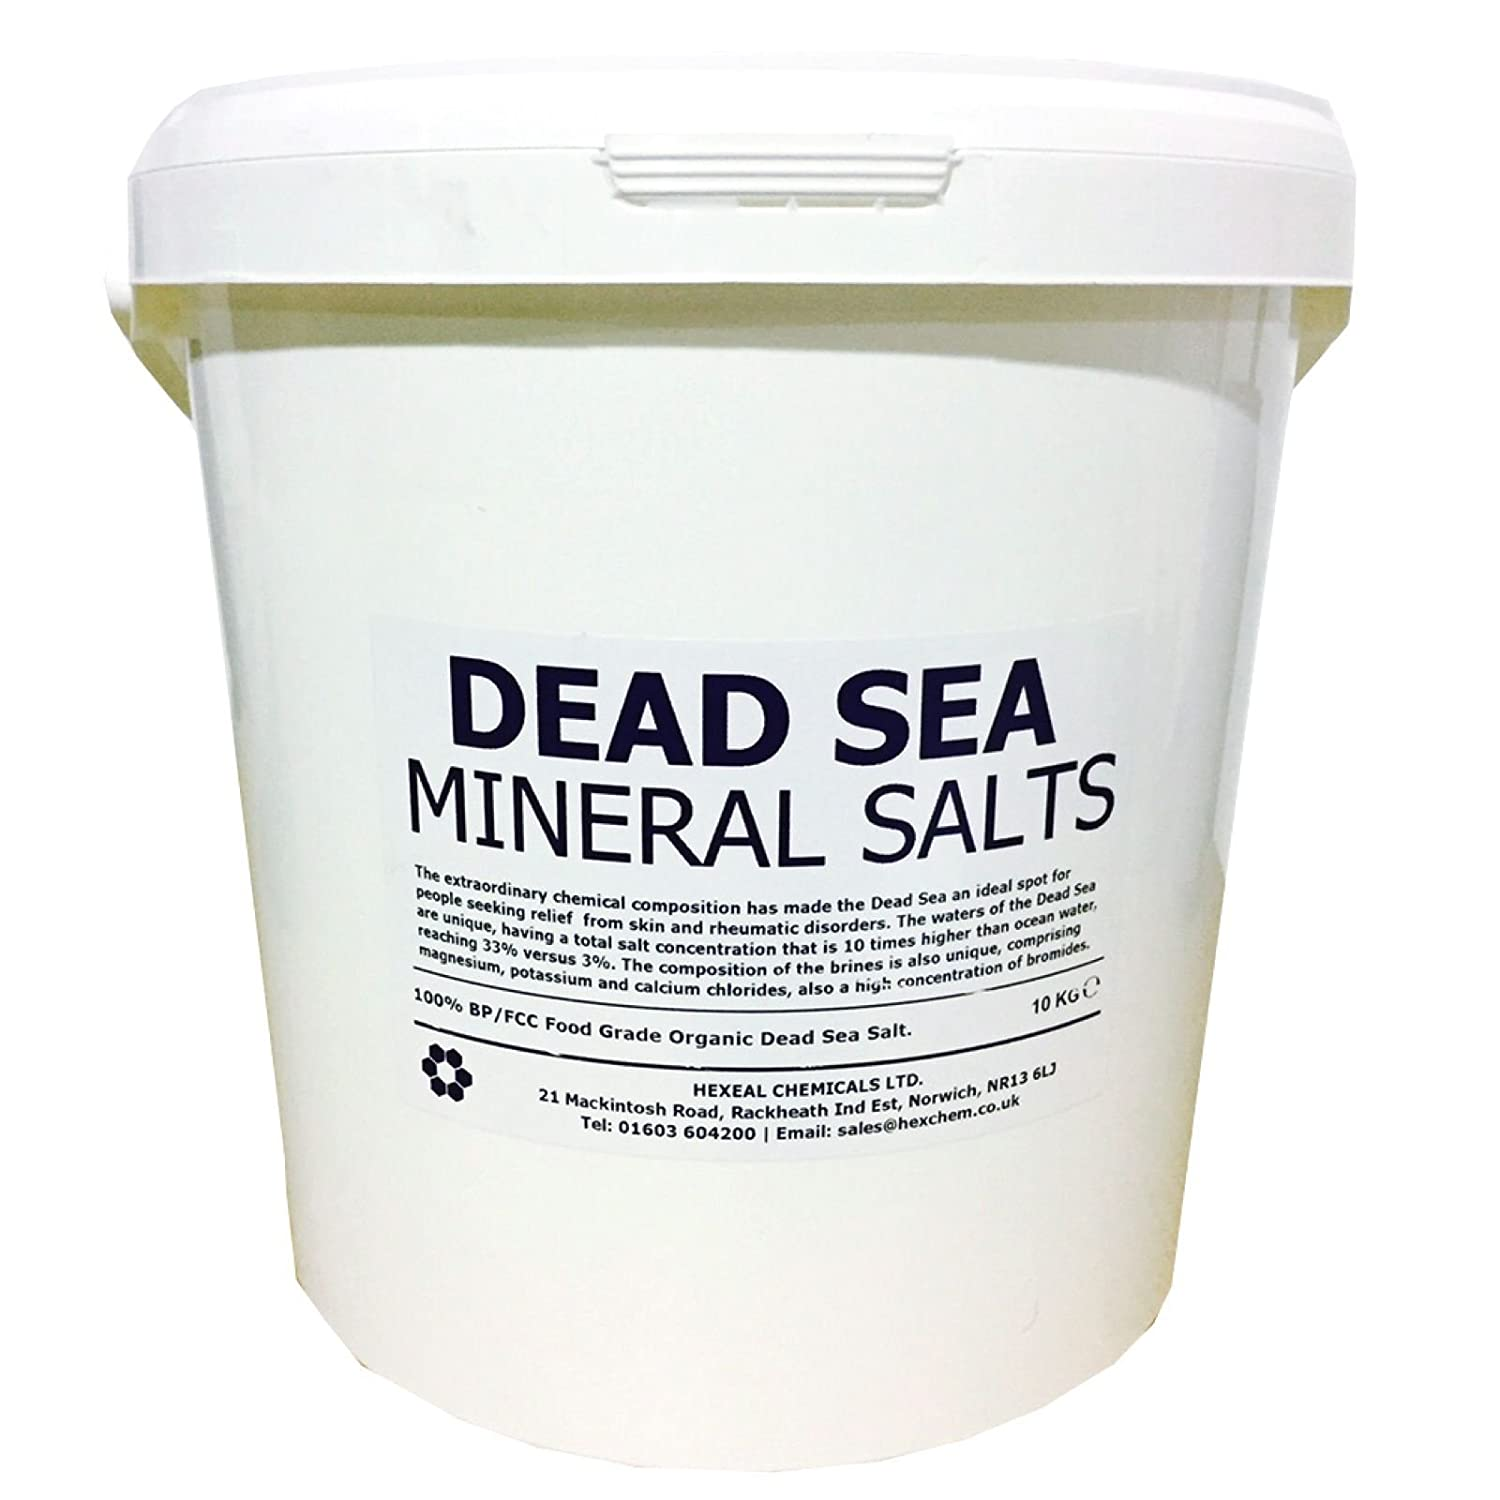 DEAD SEA BATH SALTS | 10KG BUCKET | 100% Natural Organic | FCC Food Grade Dead Sea Works Ltd.